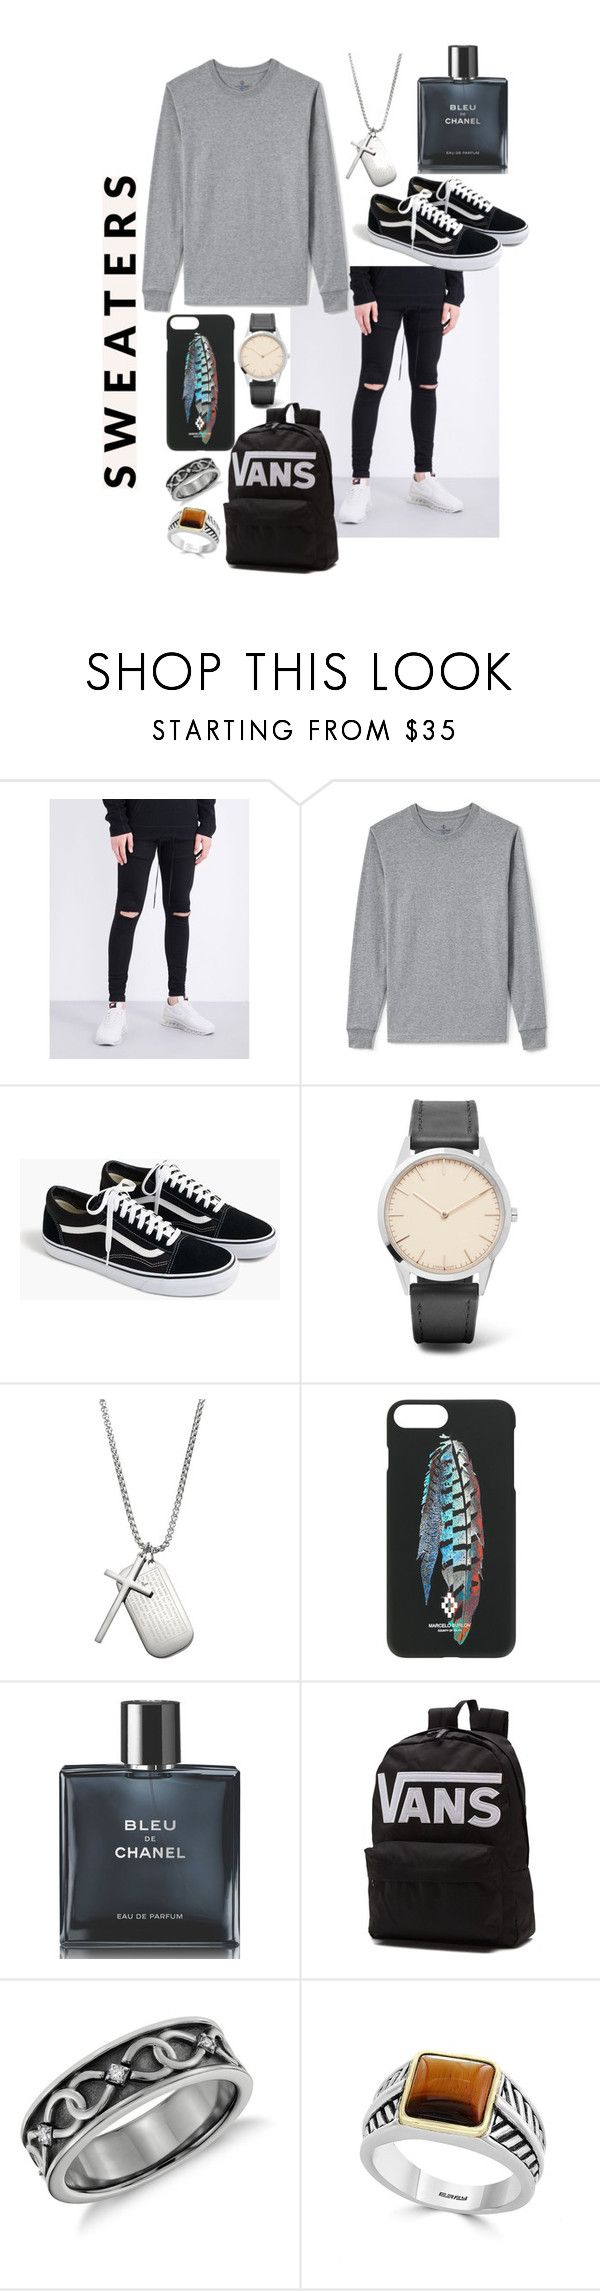 """""""Untitled #146"""" by meganjaned ❤ liked on Polyvore featuring Hera, Lands' End, J.Crew, Uniform Wares, 1913, Marcelo Burlon, Chanel, Vans, Effy Jewelry and men's fashion"""